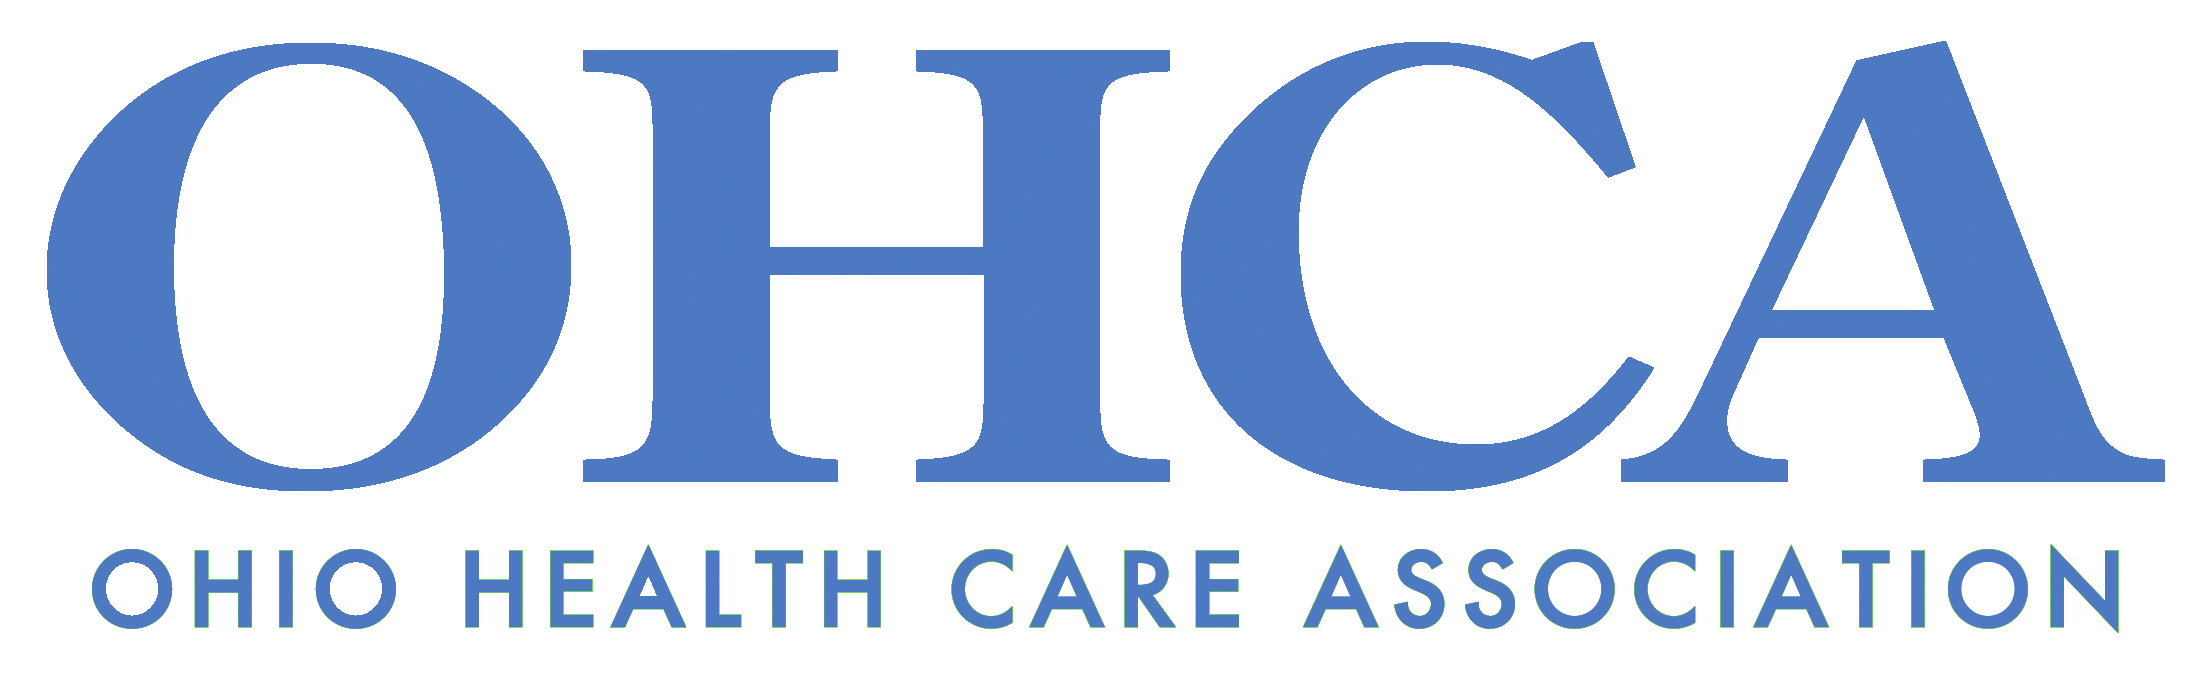 OHCA Webinar: Phase 2 Update & What to Expect for Phase 3